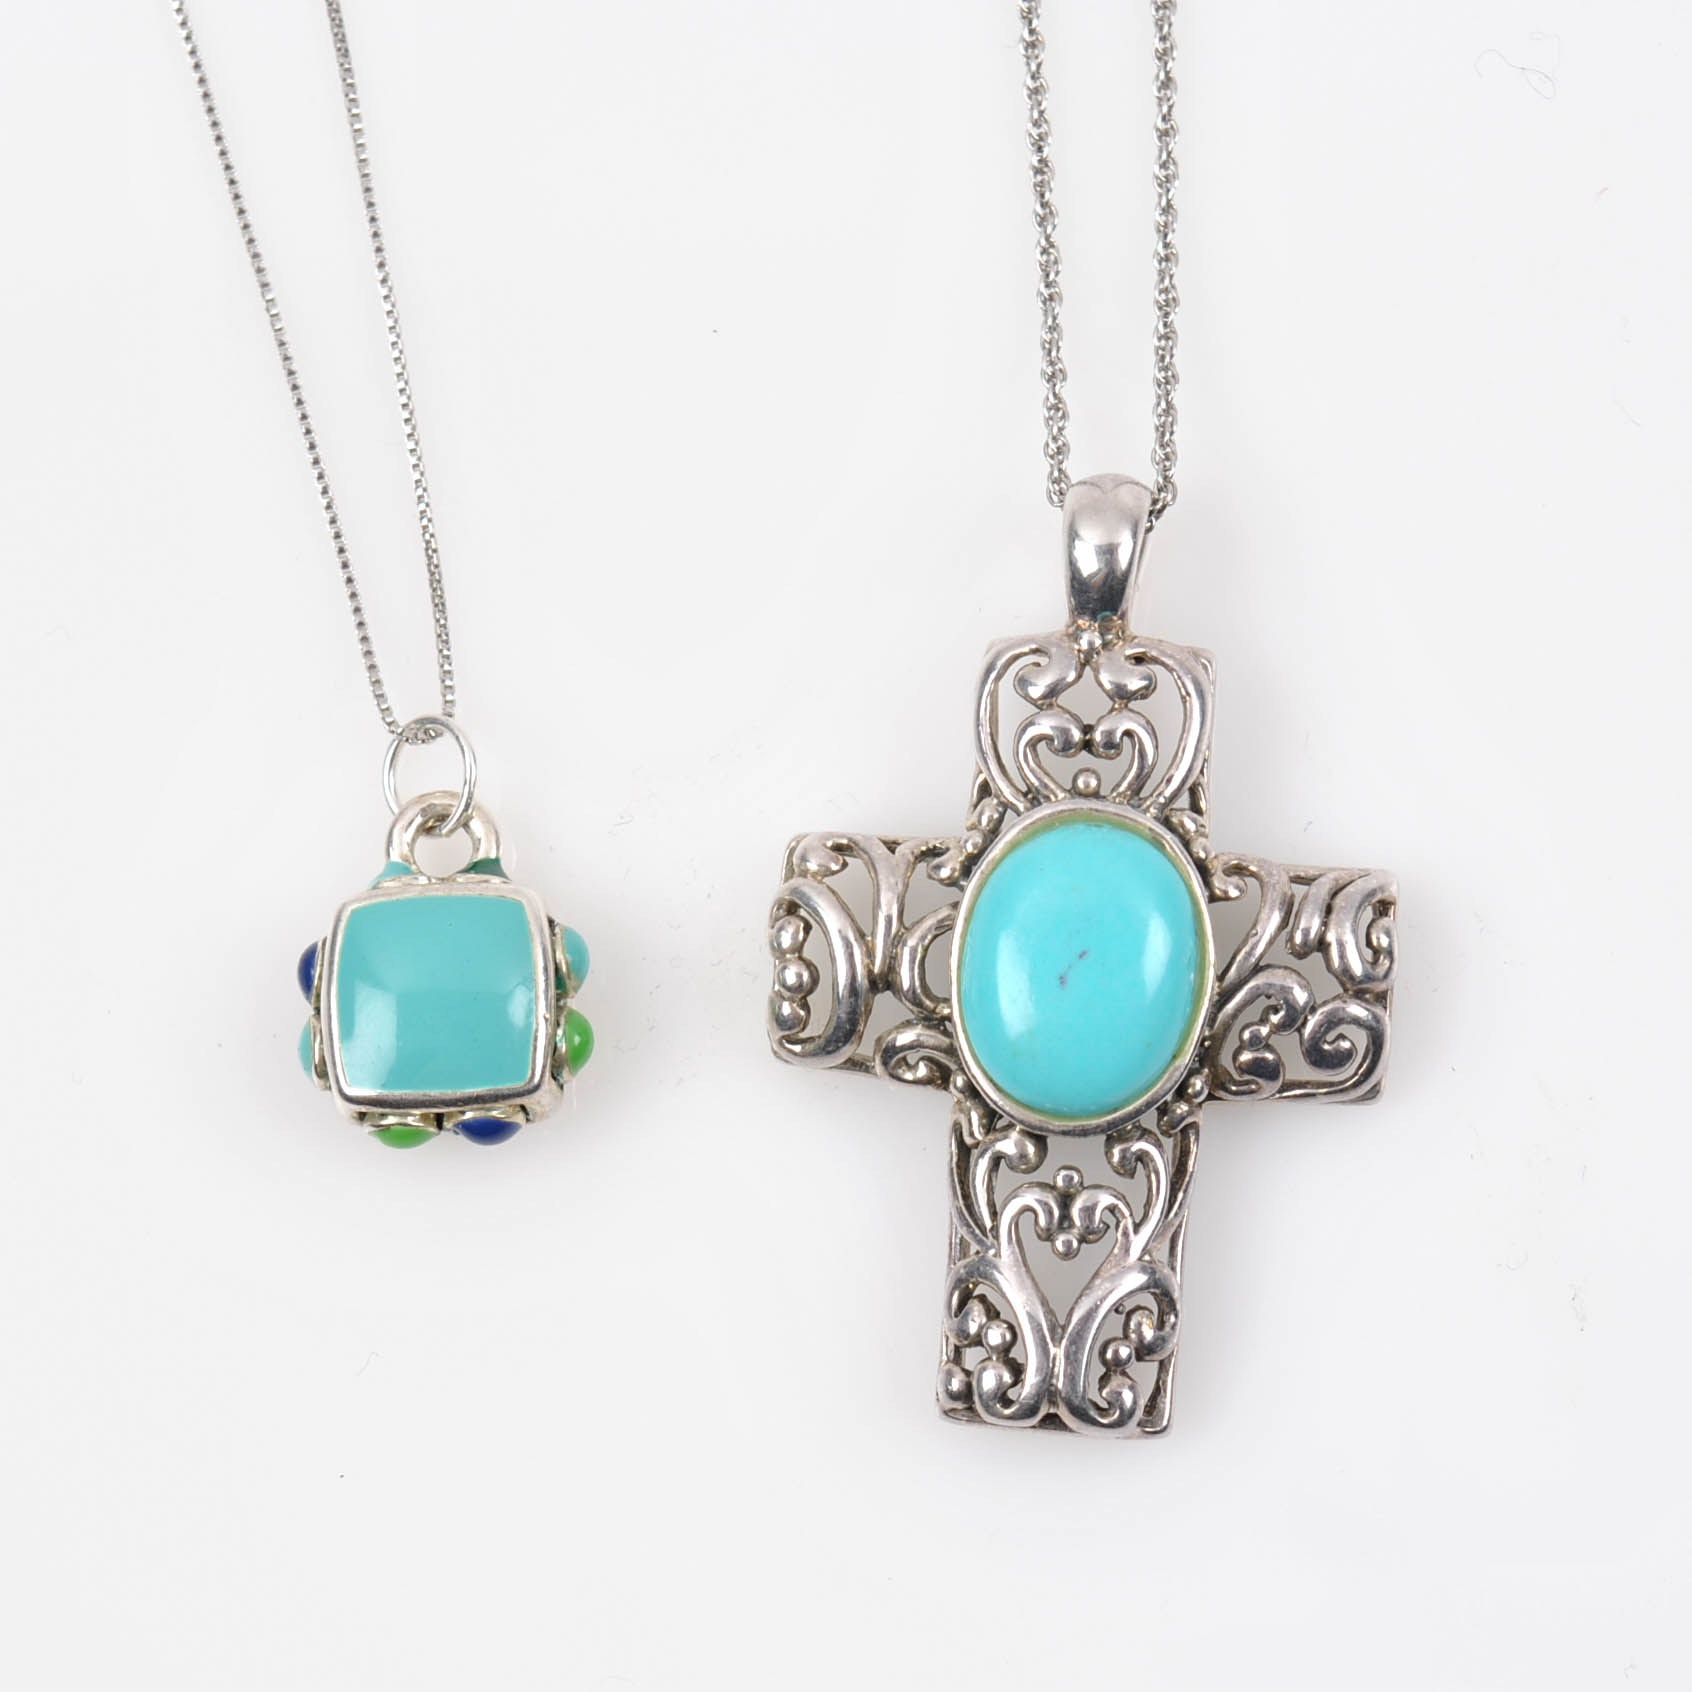 Sterling Silver Imitation Turquoise Pendant Necklaces